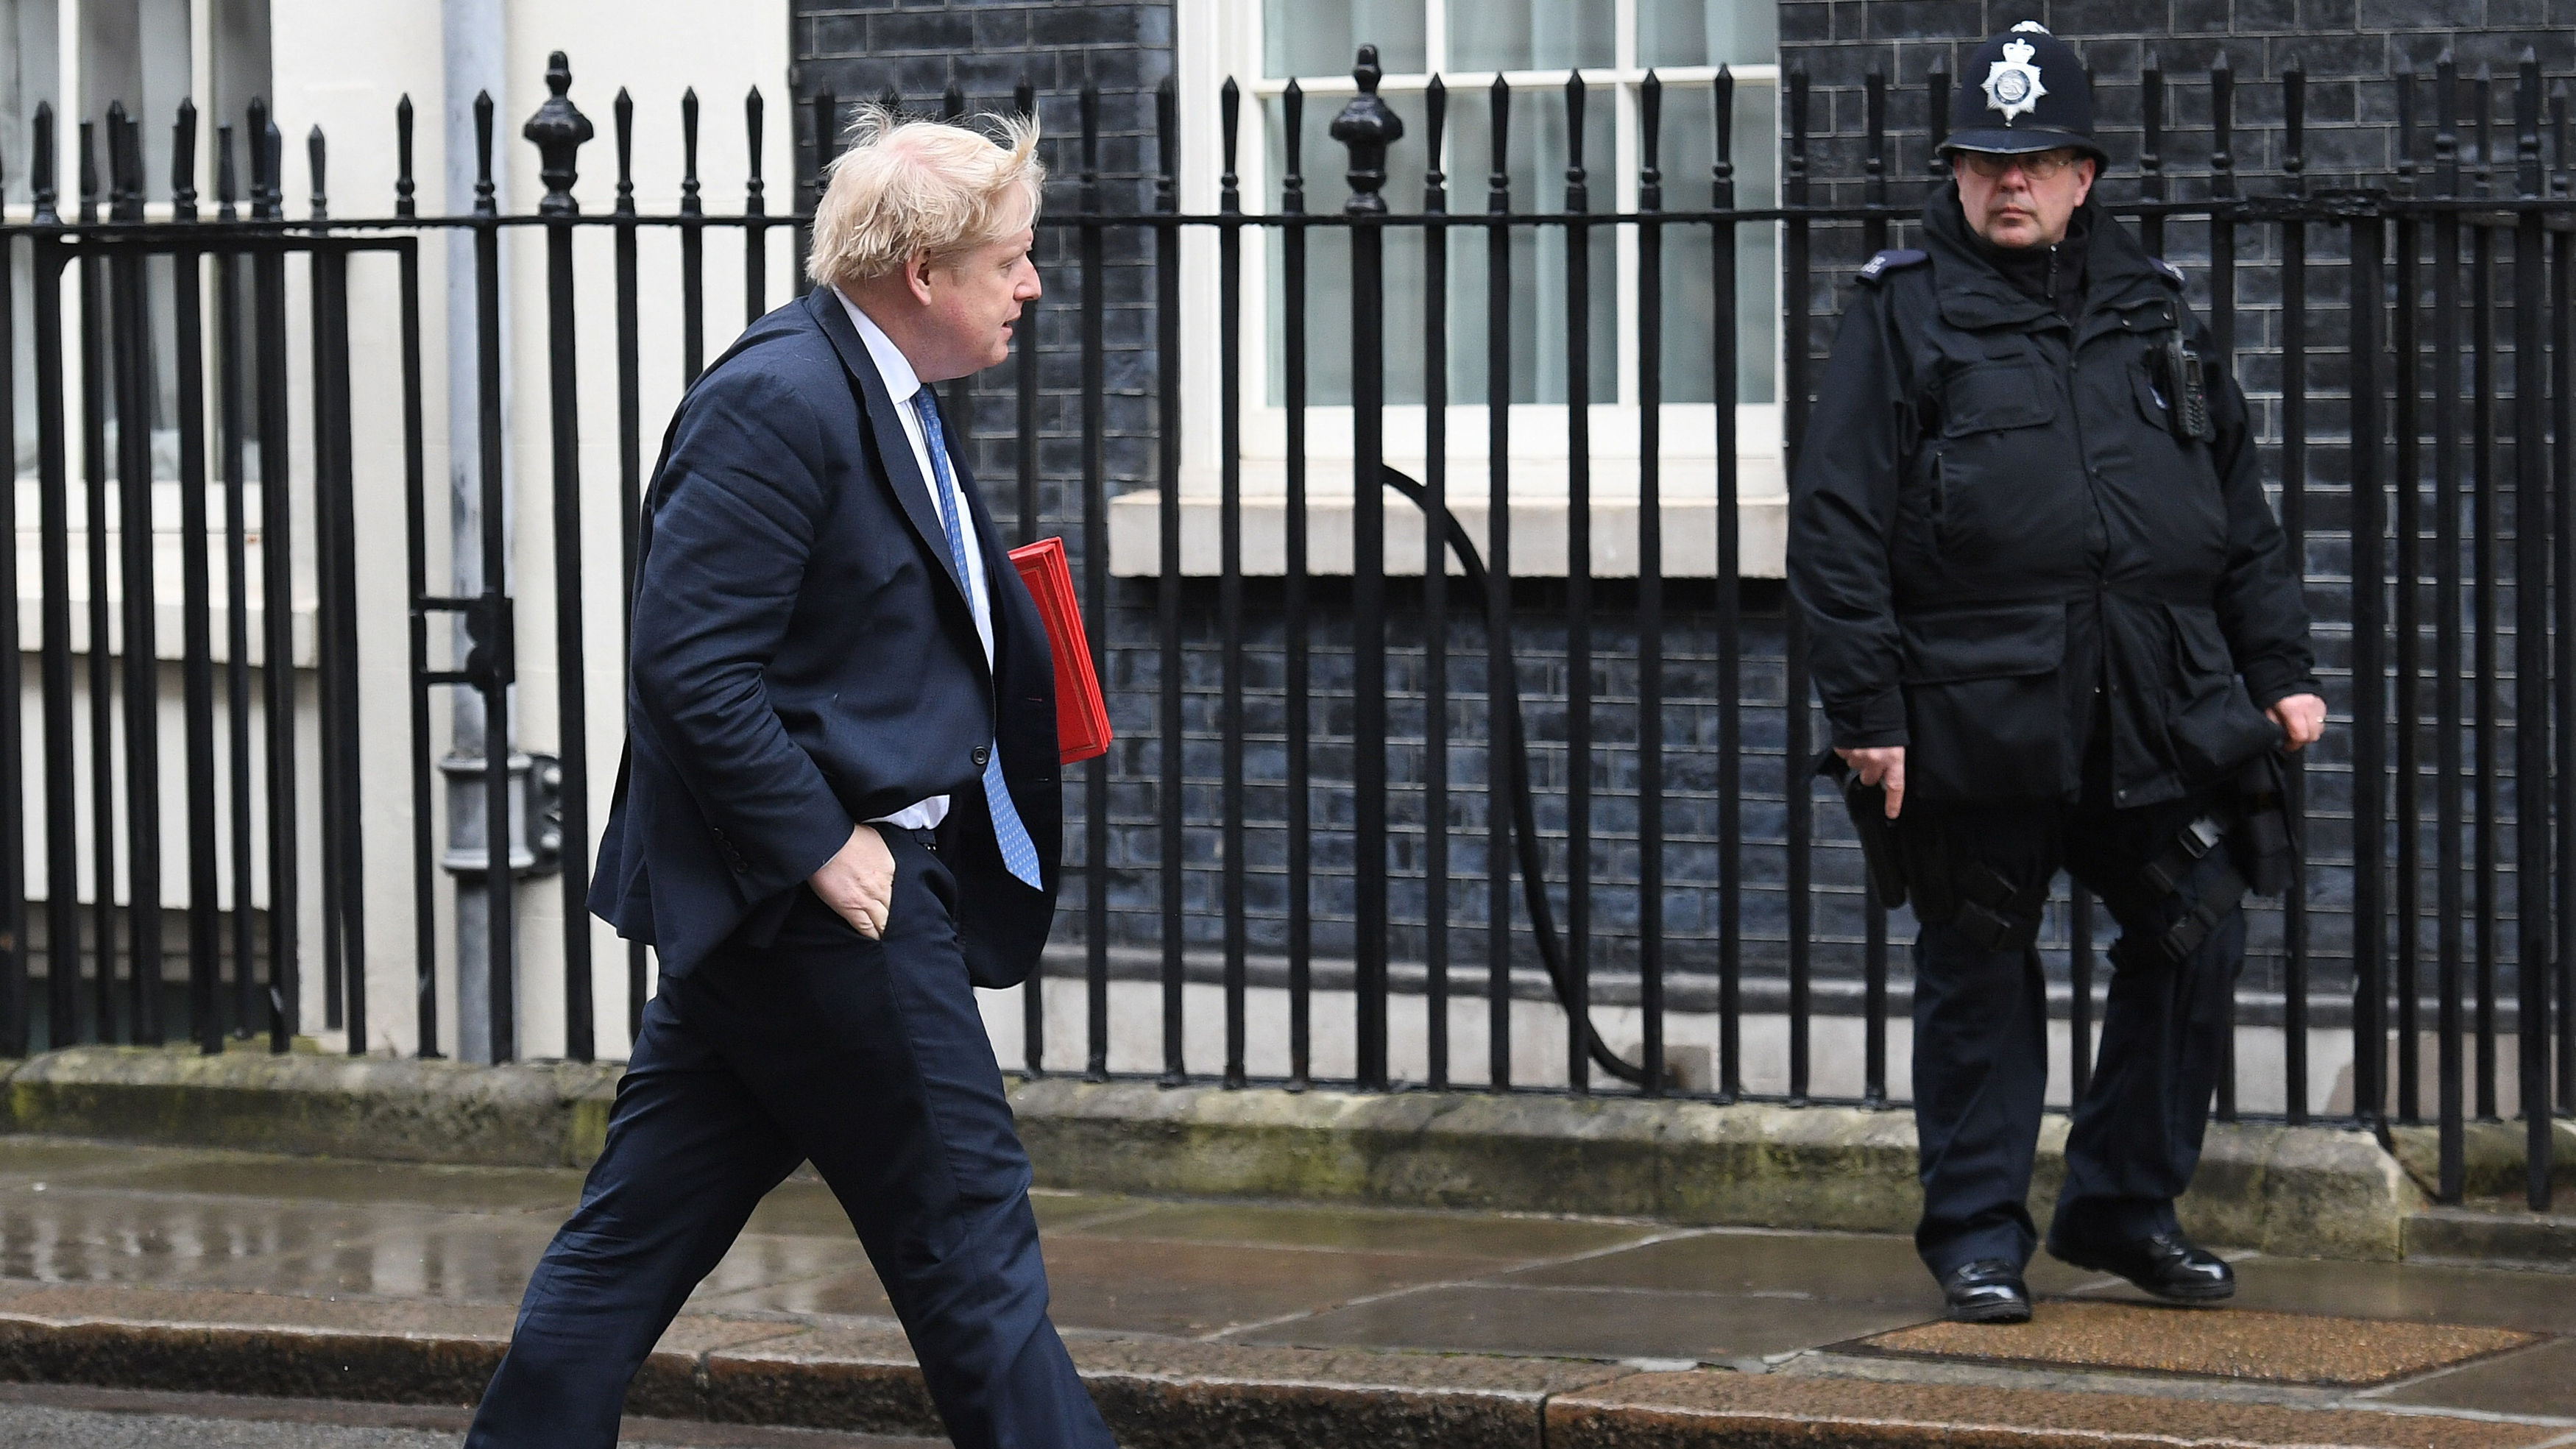 Hard Brexit should hold no 'terrors' for UK: Johnson